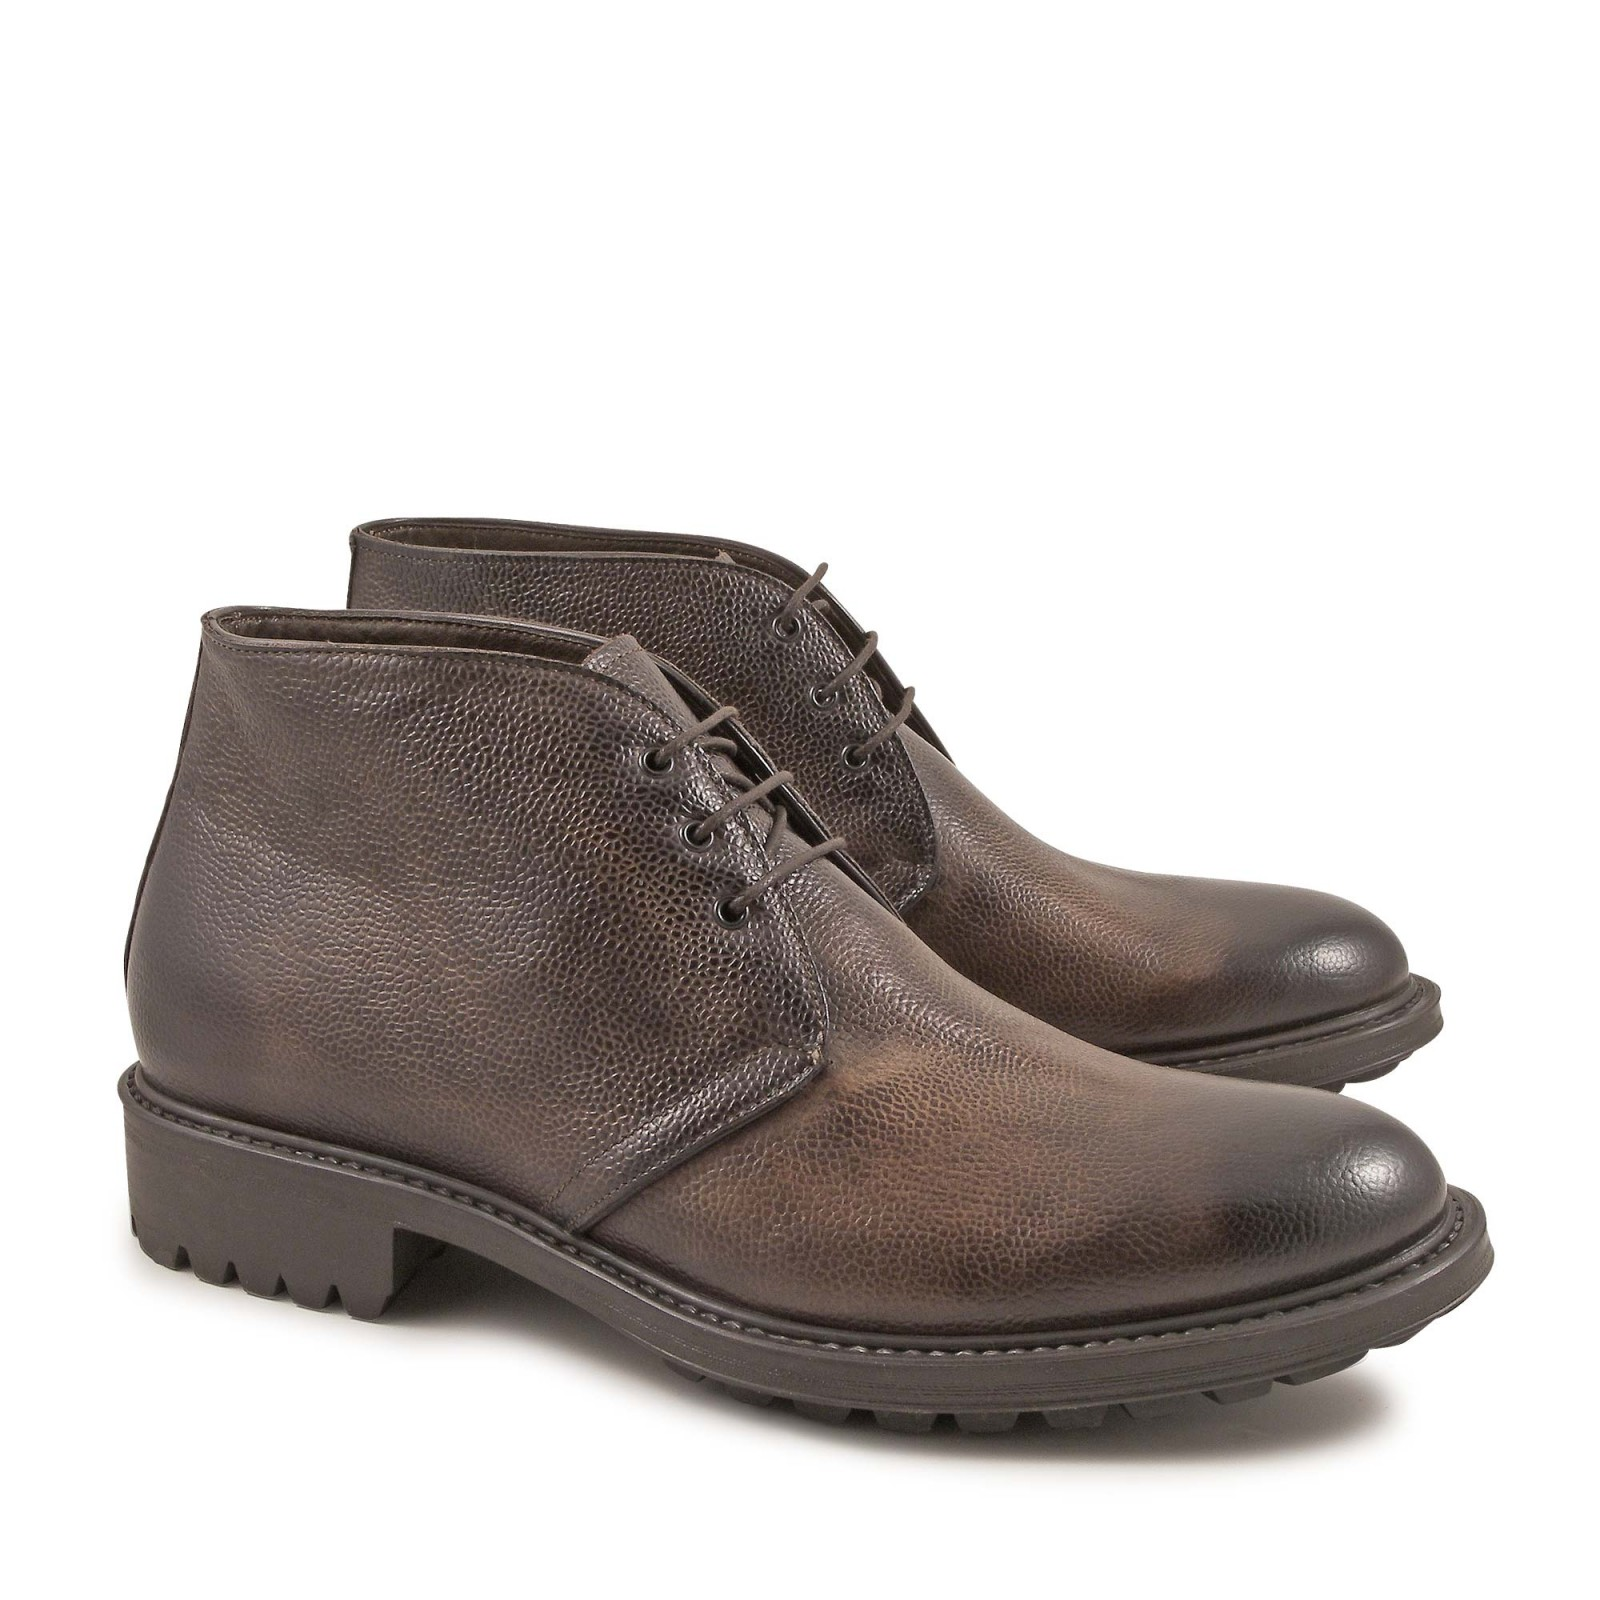 Laces Italy  city photo : ... men's bootis with laces in chocolat calf italian leather Made in Italy